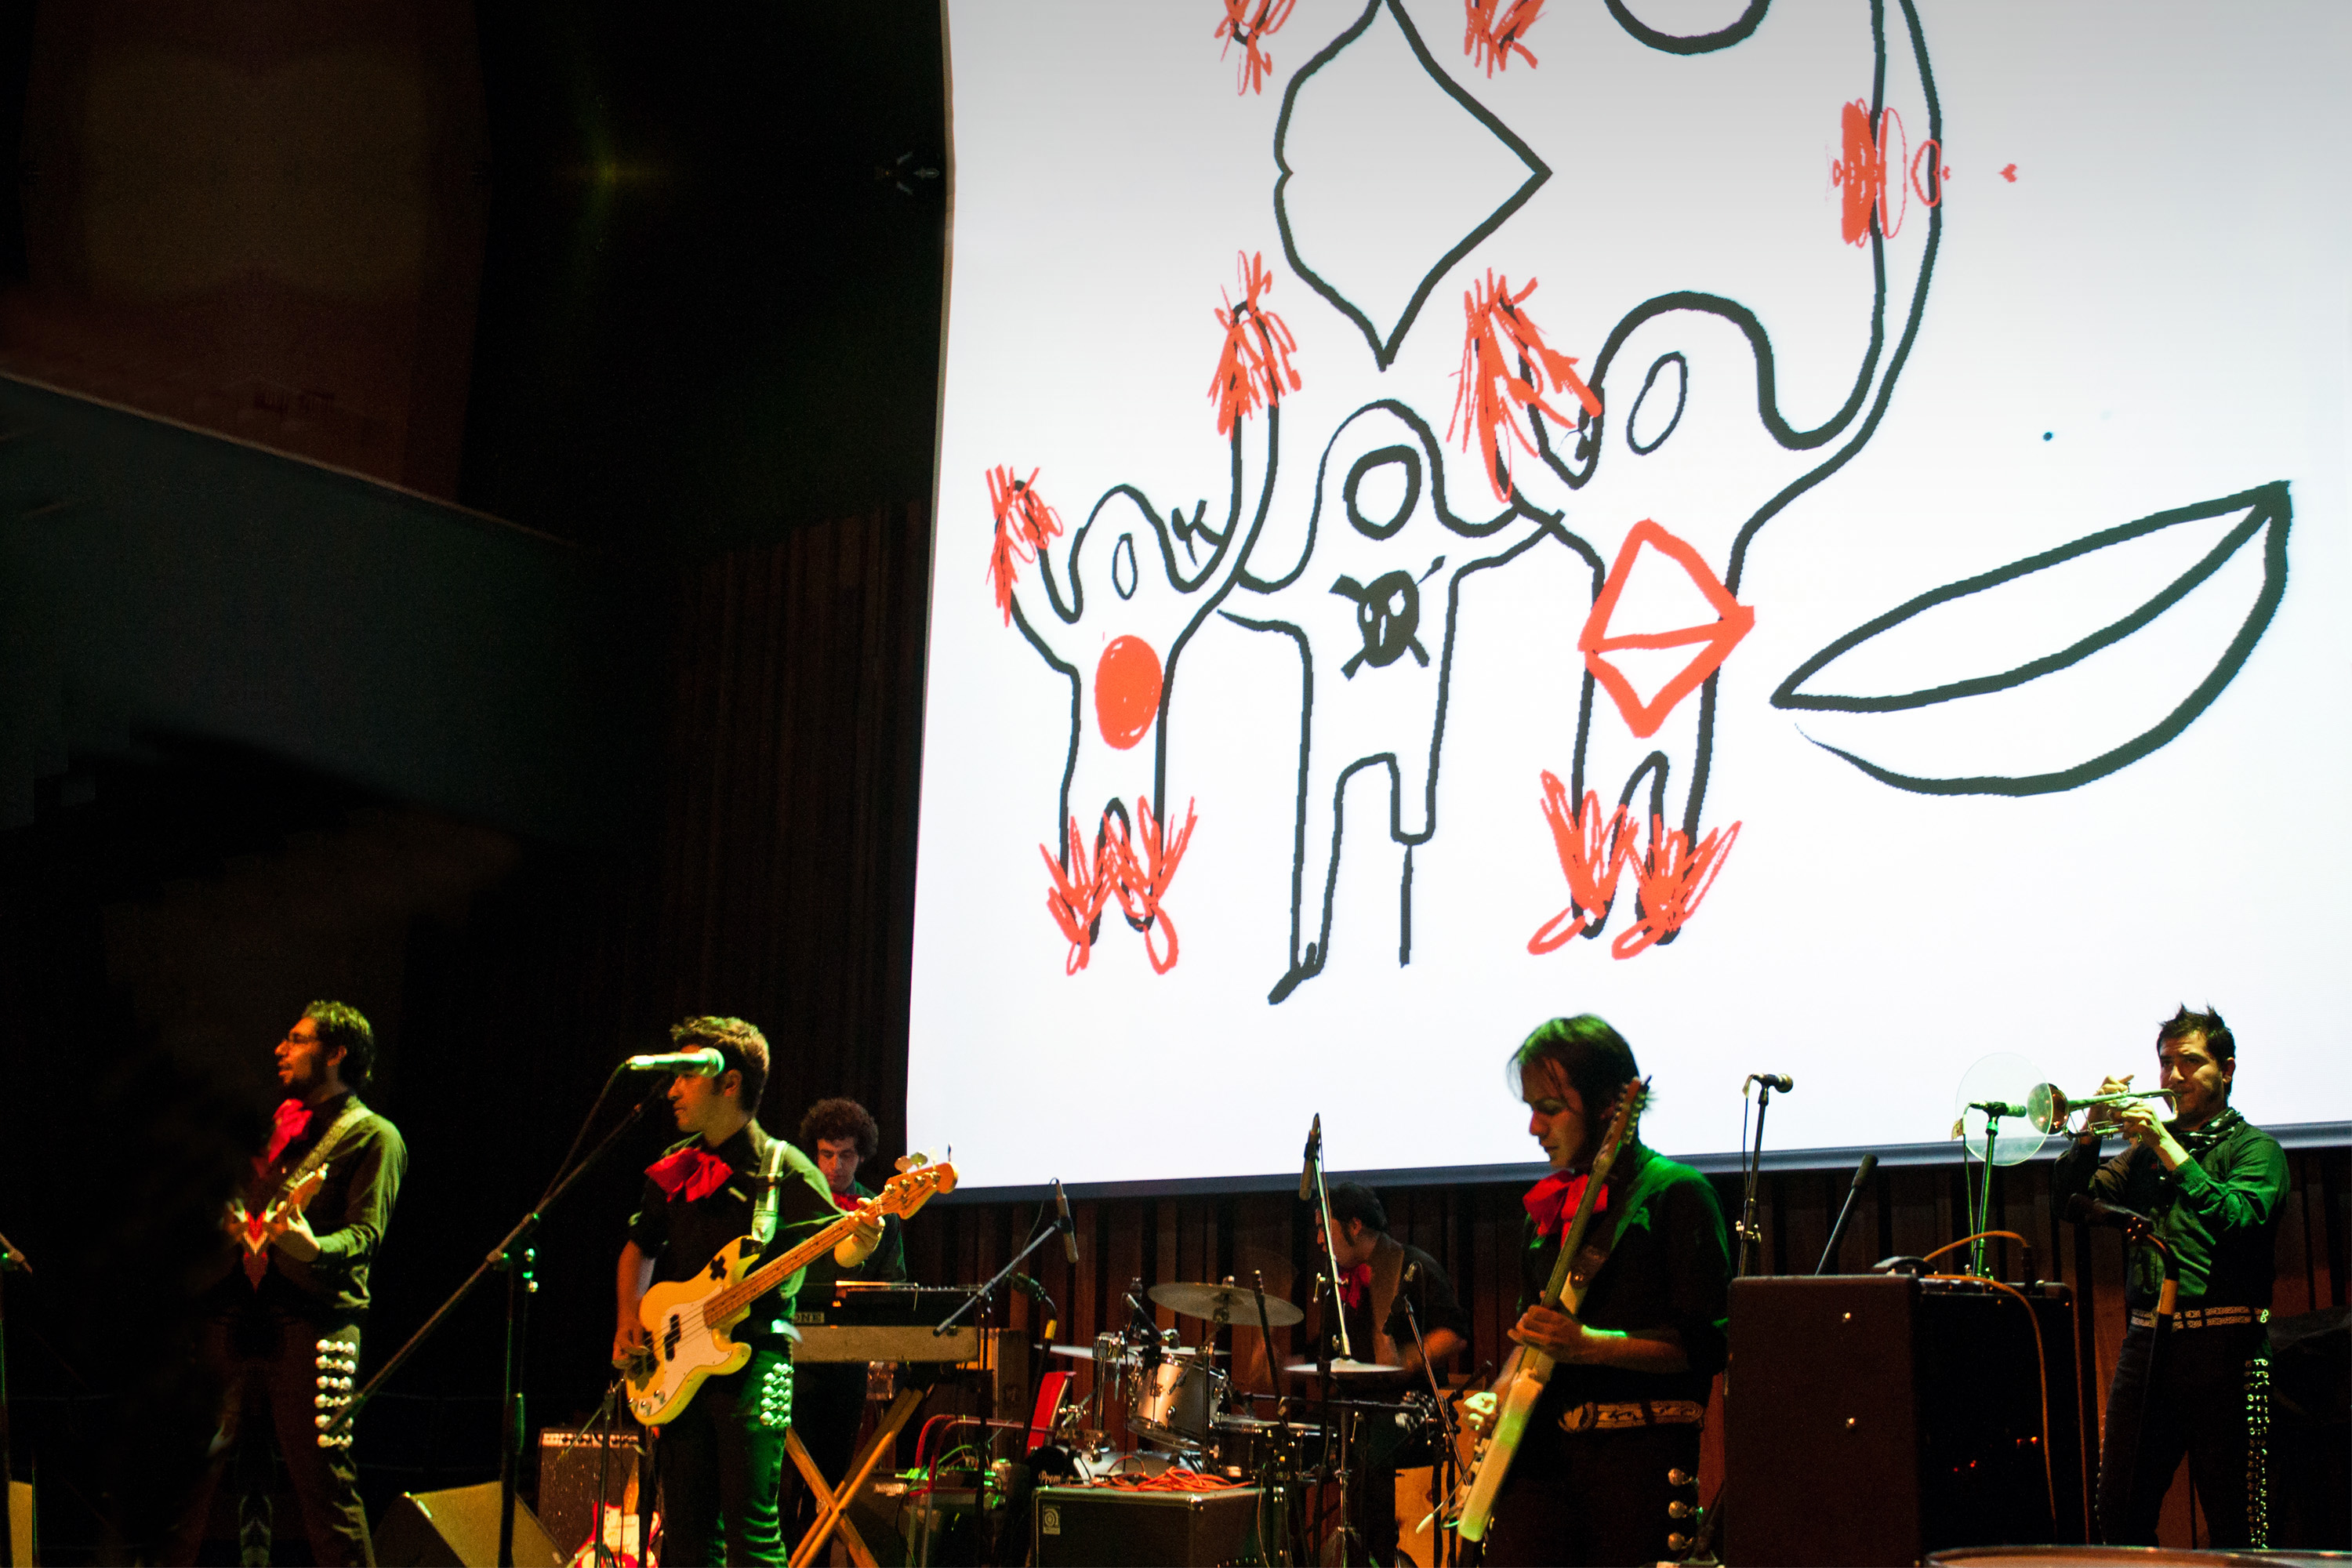 Drawingalive — feat. Twin Tones, CCE/Mexico City, 2012